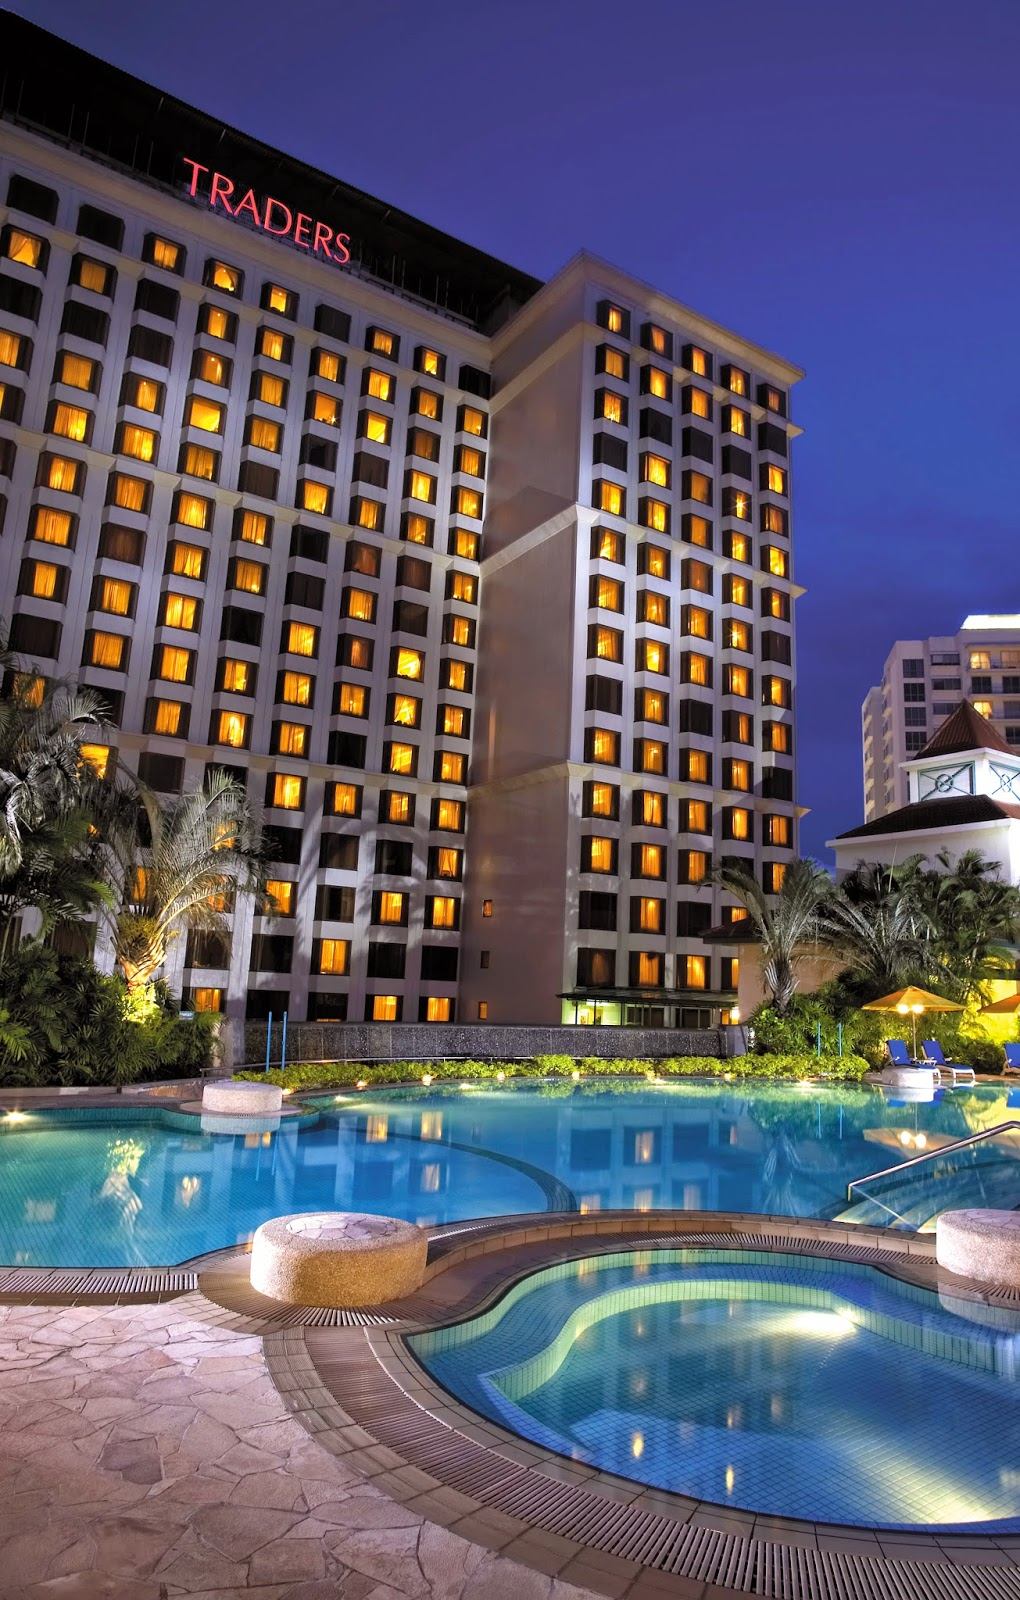 Traders Hotel Singapore Staycation Review weekend offers Family Package suites apartment studio spa gym Shangri-La Hotels Resorts Cafe Biz Restaurant Promotion Ah Hoi's kitchen kids free room stay daily meals pool